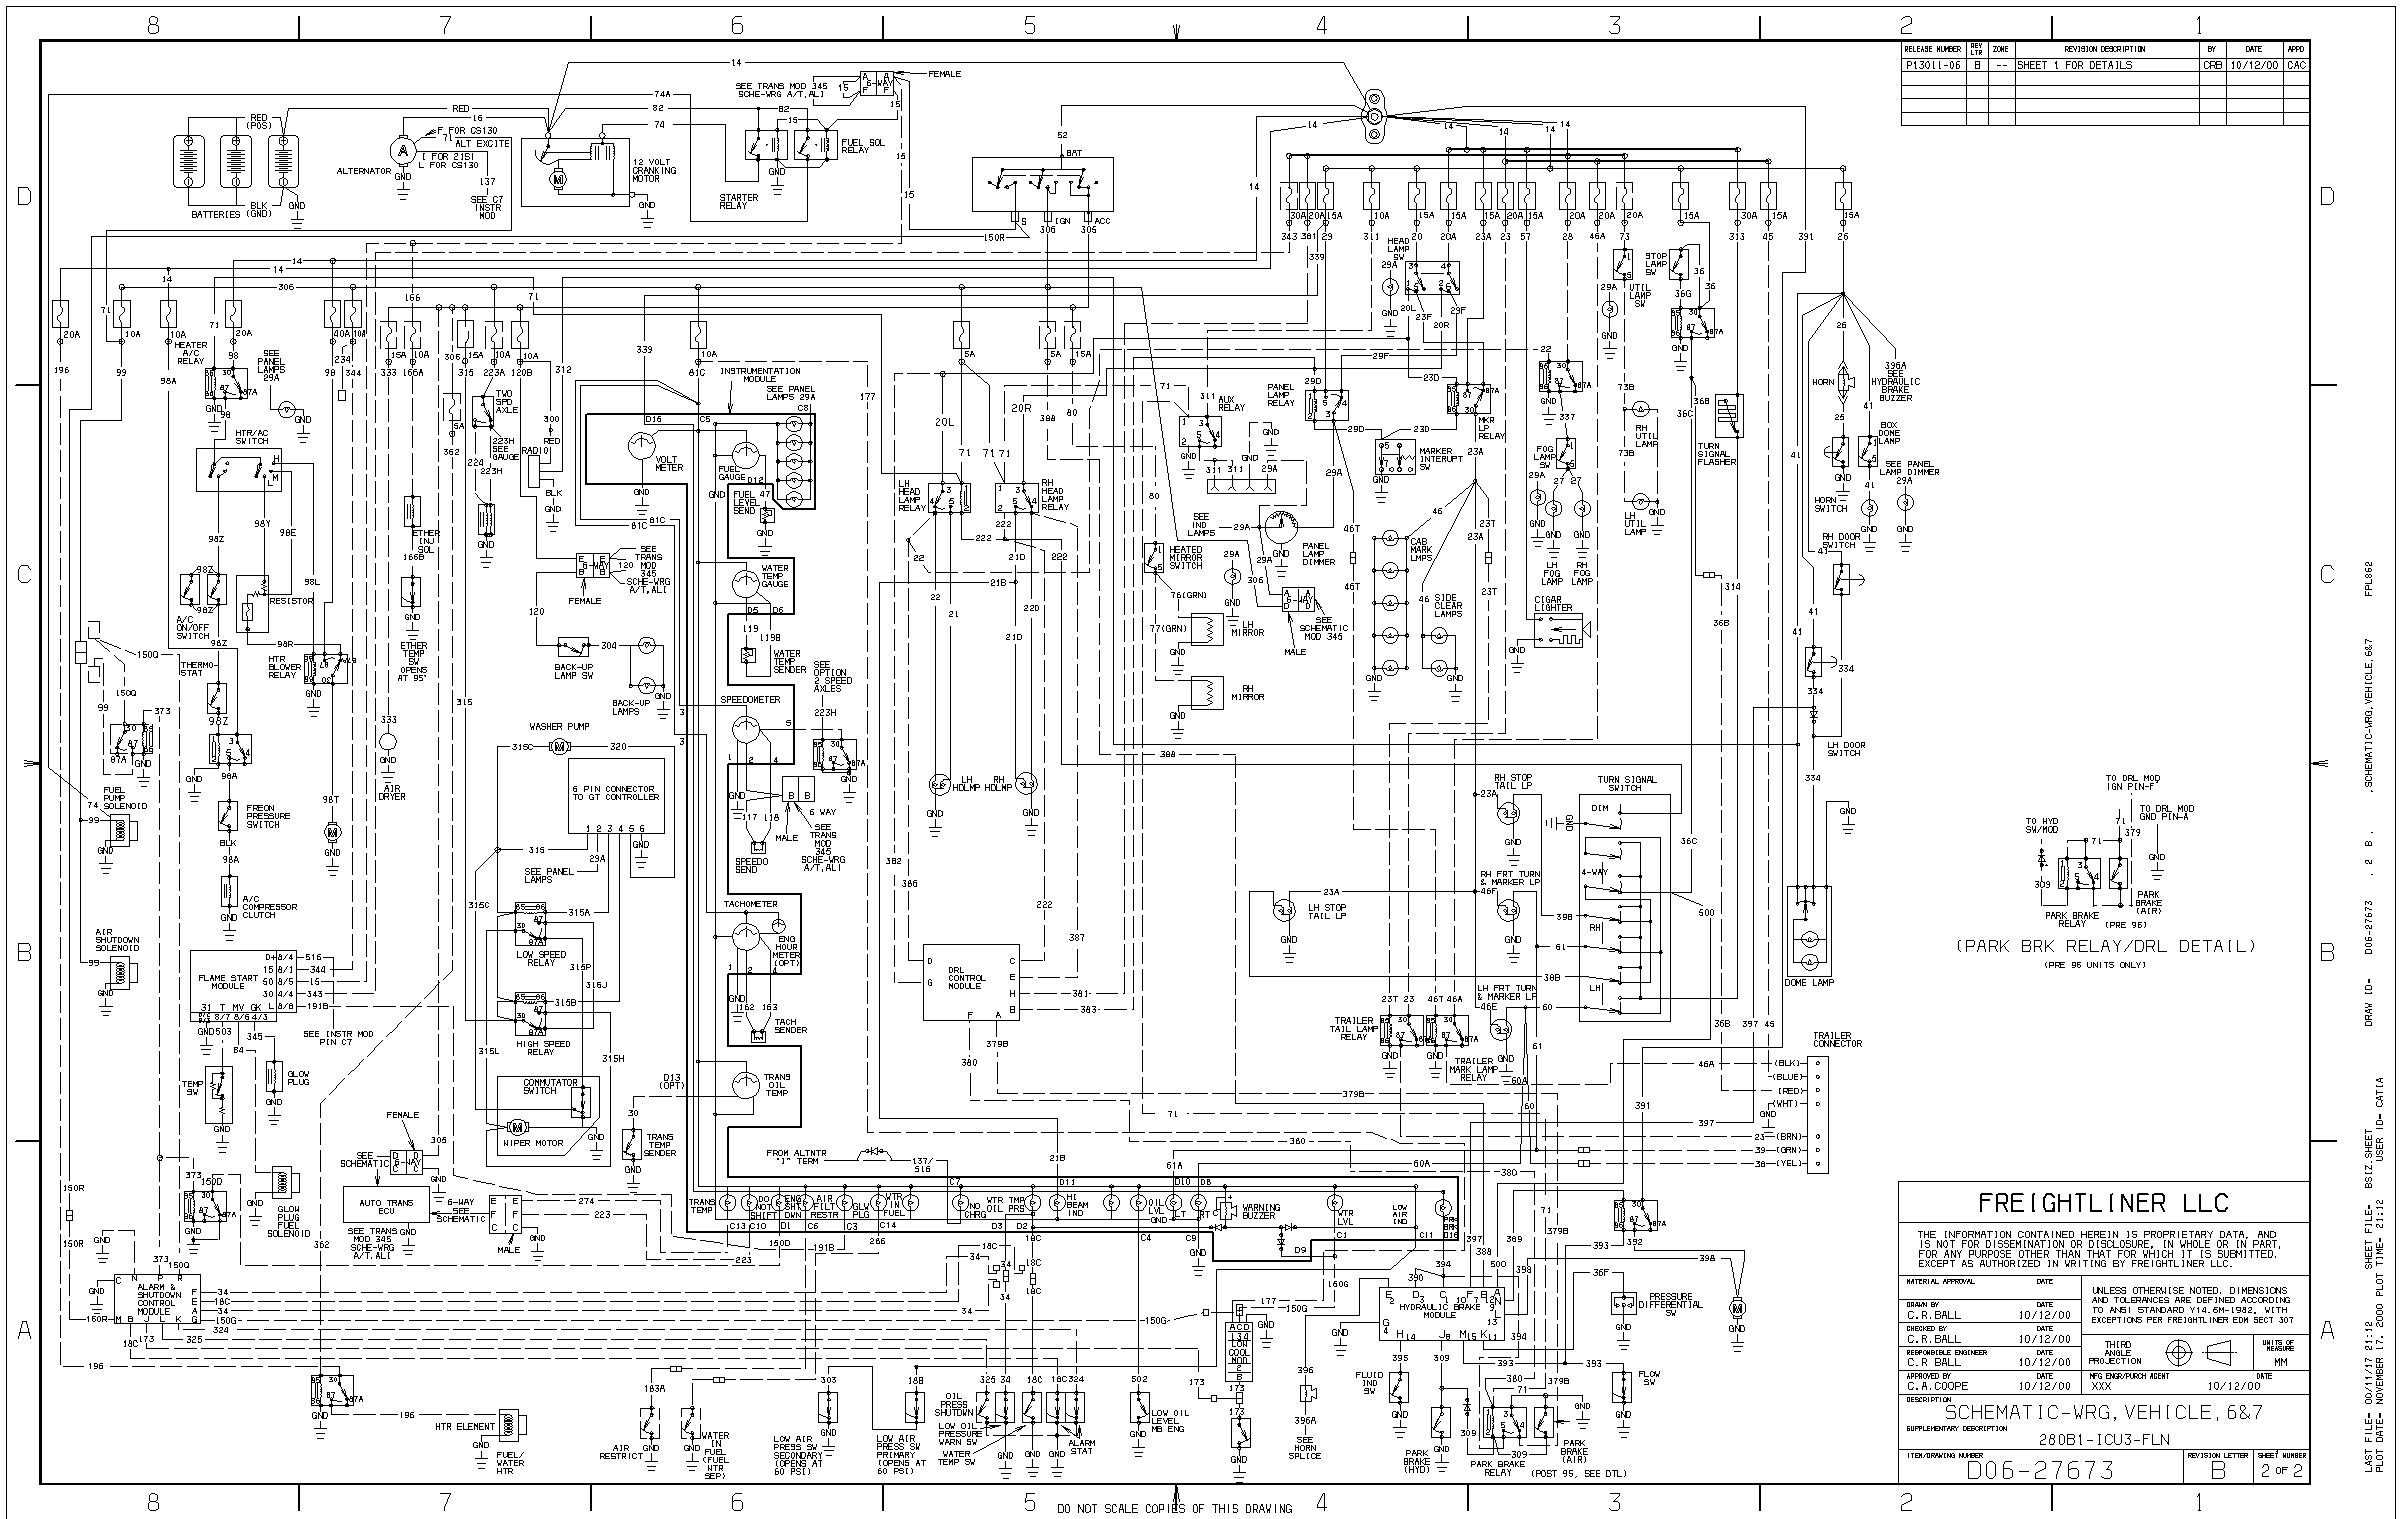 Toyota Camry 2000 Engine Diagram My Wiring For Freightliner Rh Komagoma Co